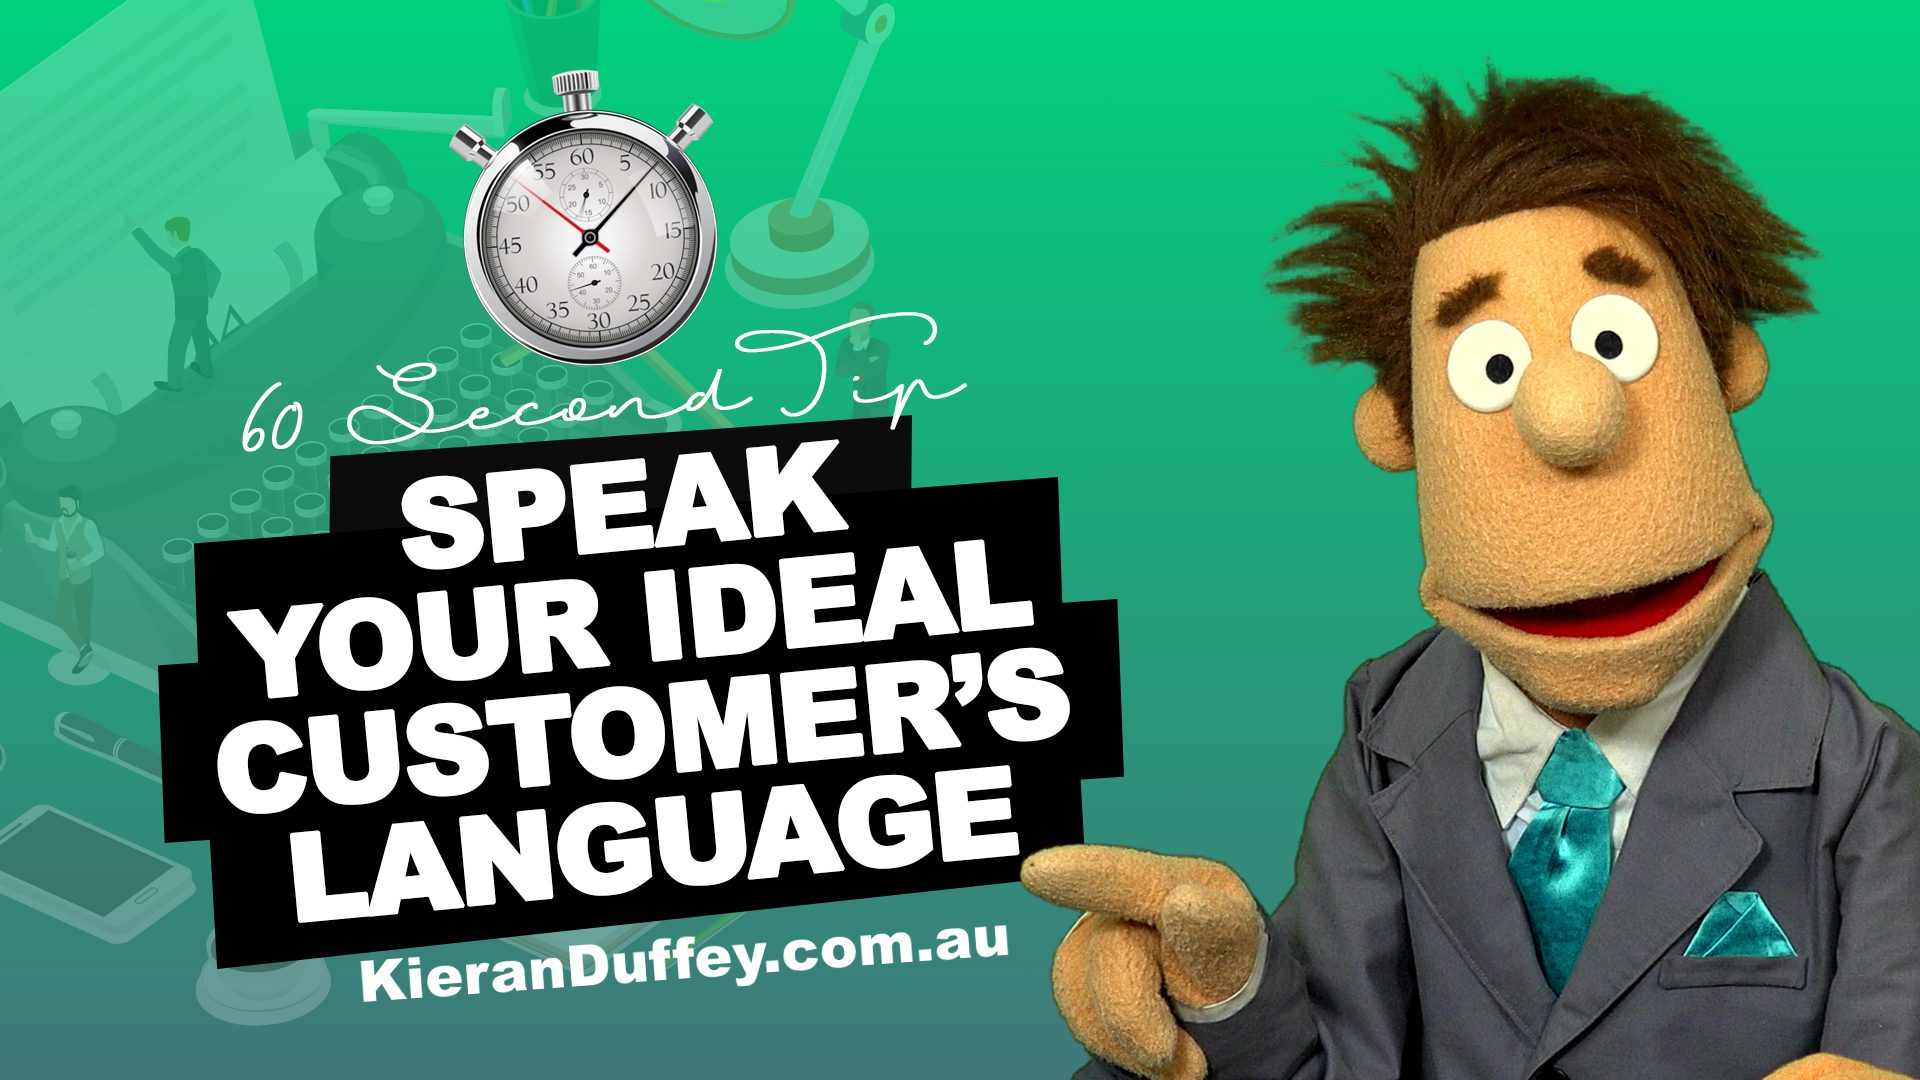 Video discussing why you need to speak your ideal customer's language in copywriting